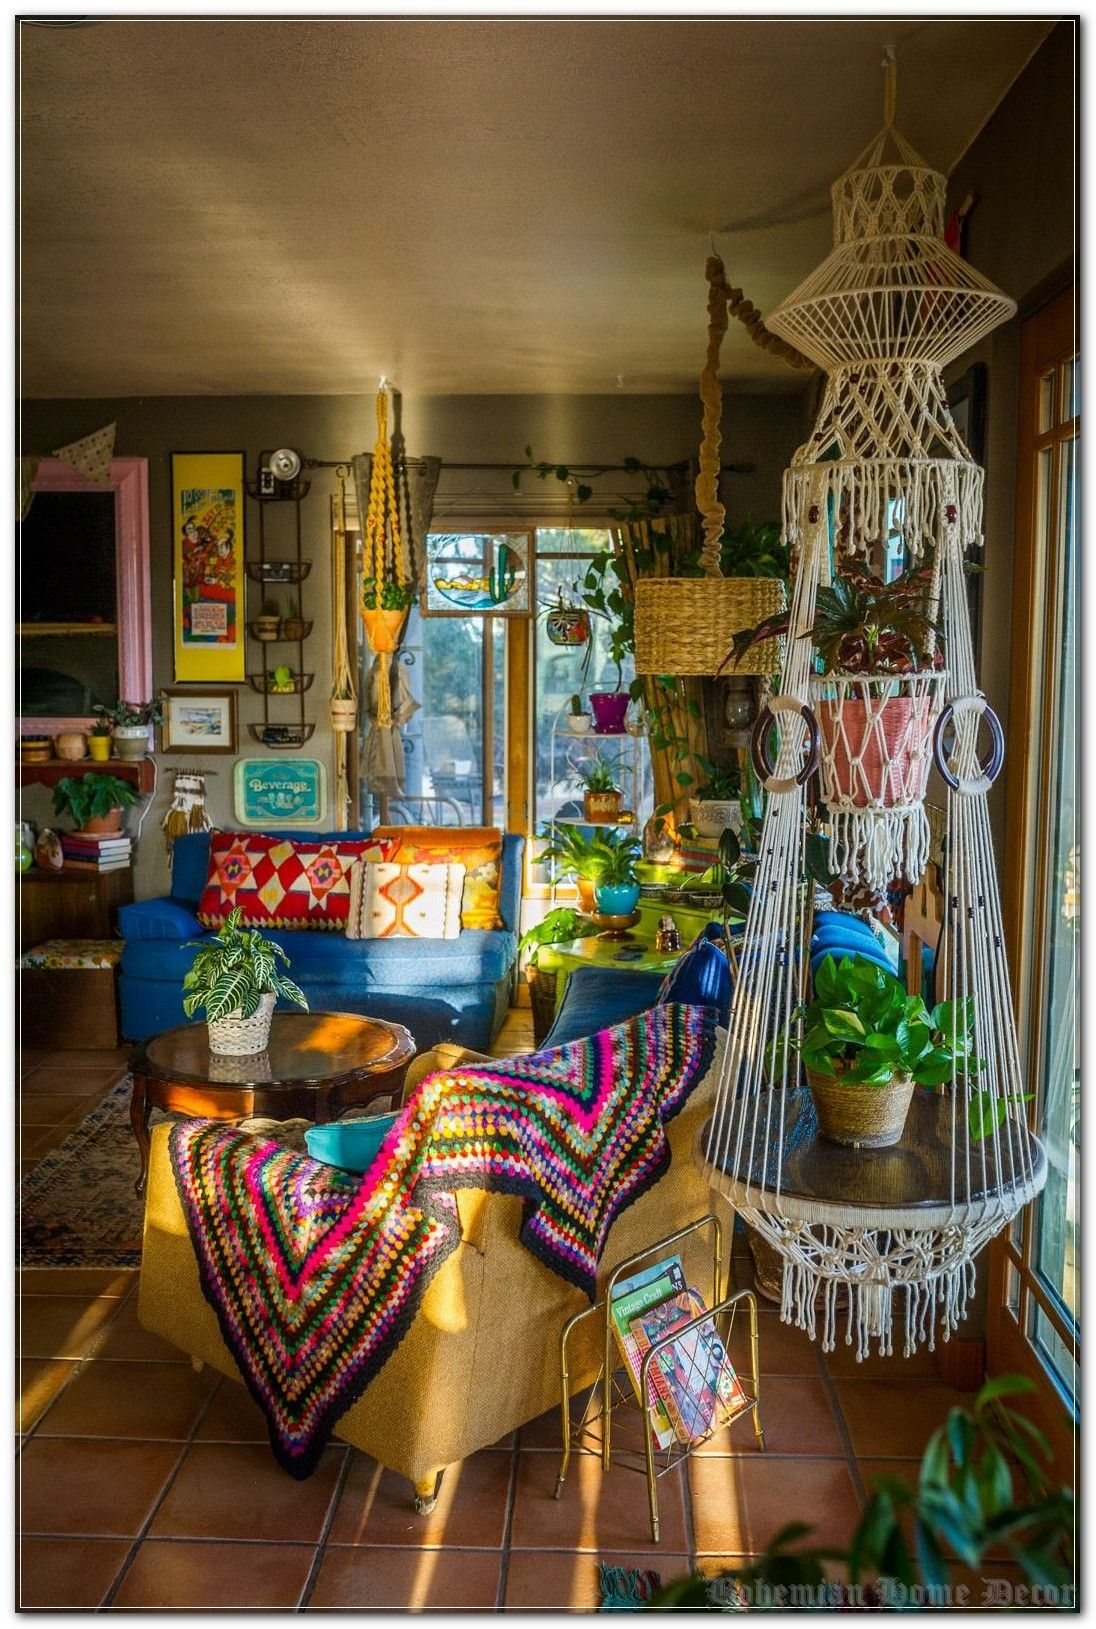 Did You Start Bohemian Home Decor For Passion or Money?